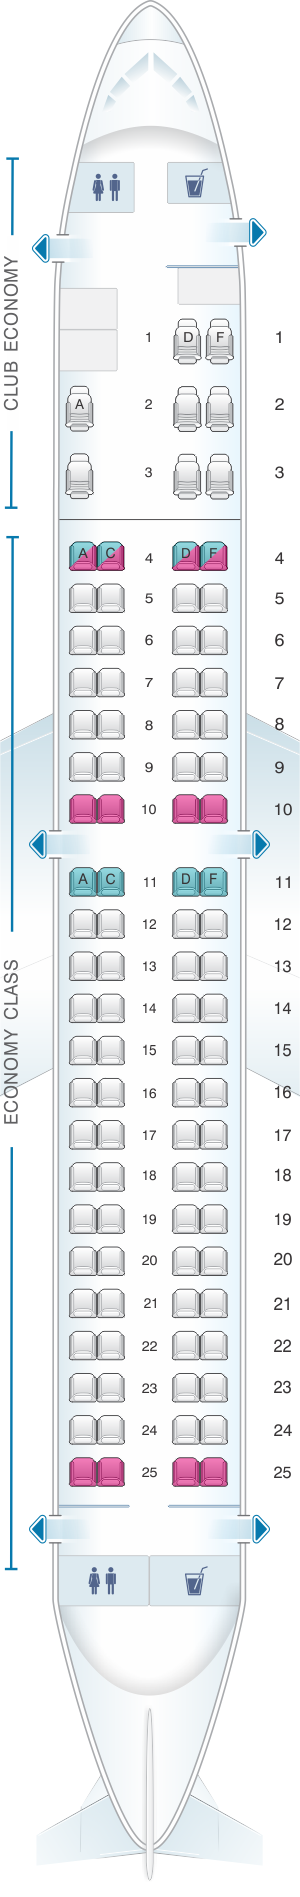 Seat map for Aerolineas Argentinas Embraer 190